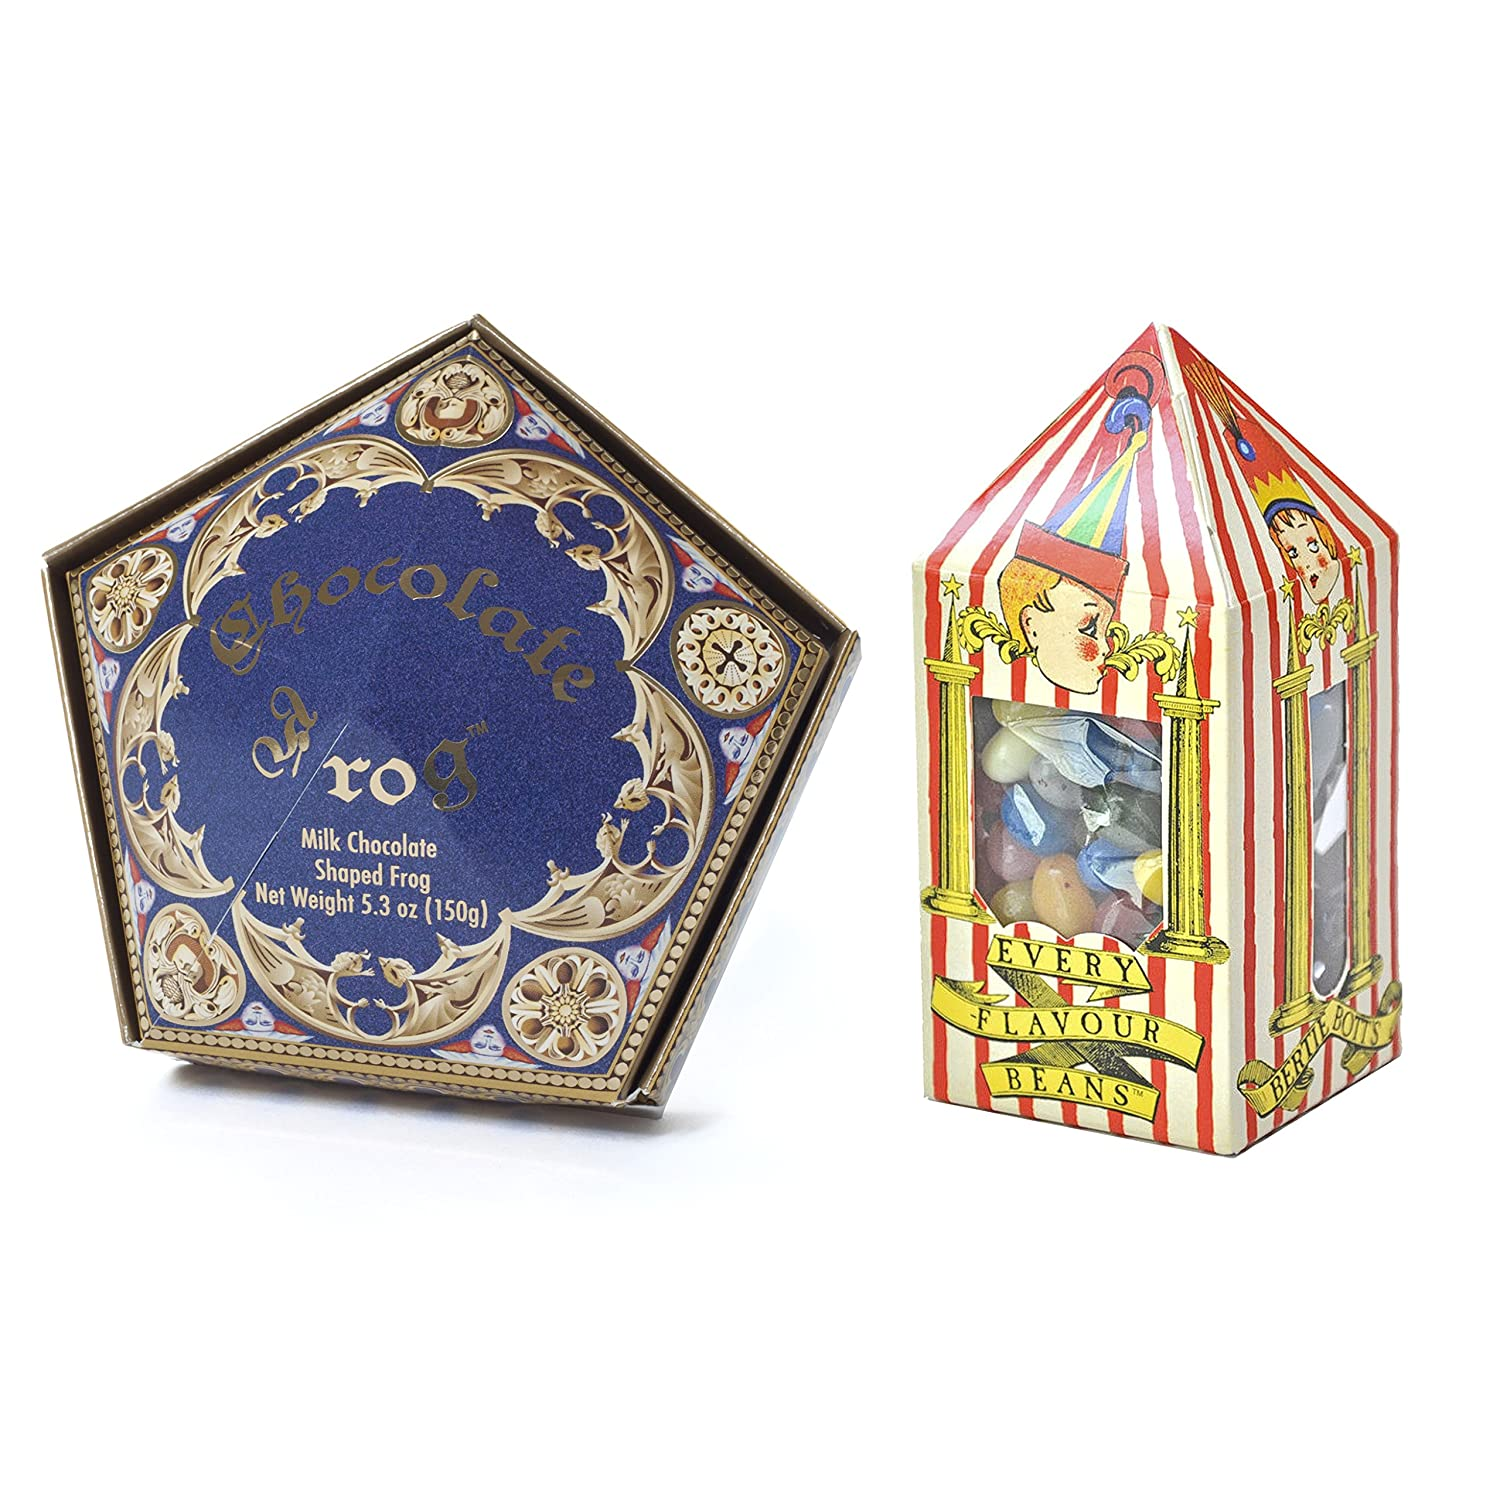 photo relating to Honeydukes Sign Printable titled Wizarding Harry Potter Honeydukes Chocolate Frog Bertie Botts Sweet Fixed as a result of Common Studios